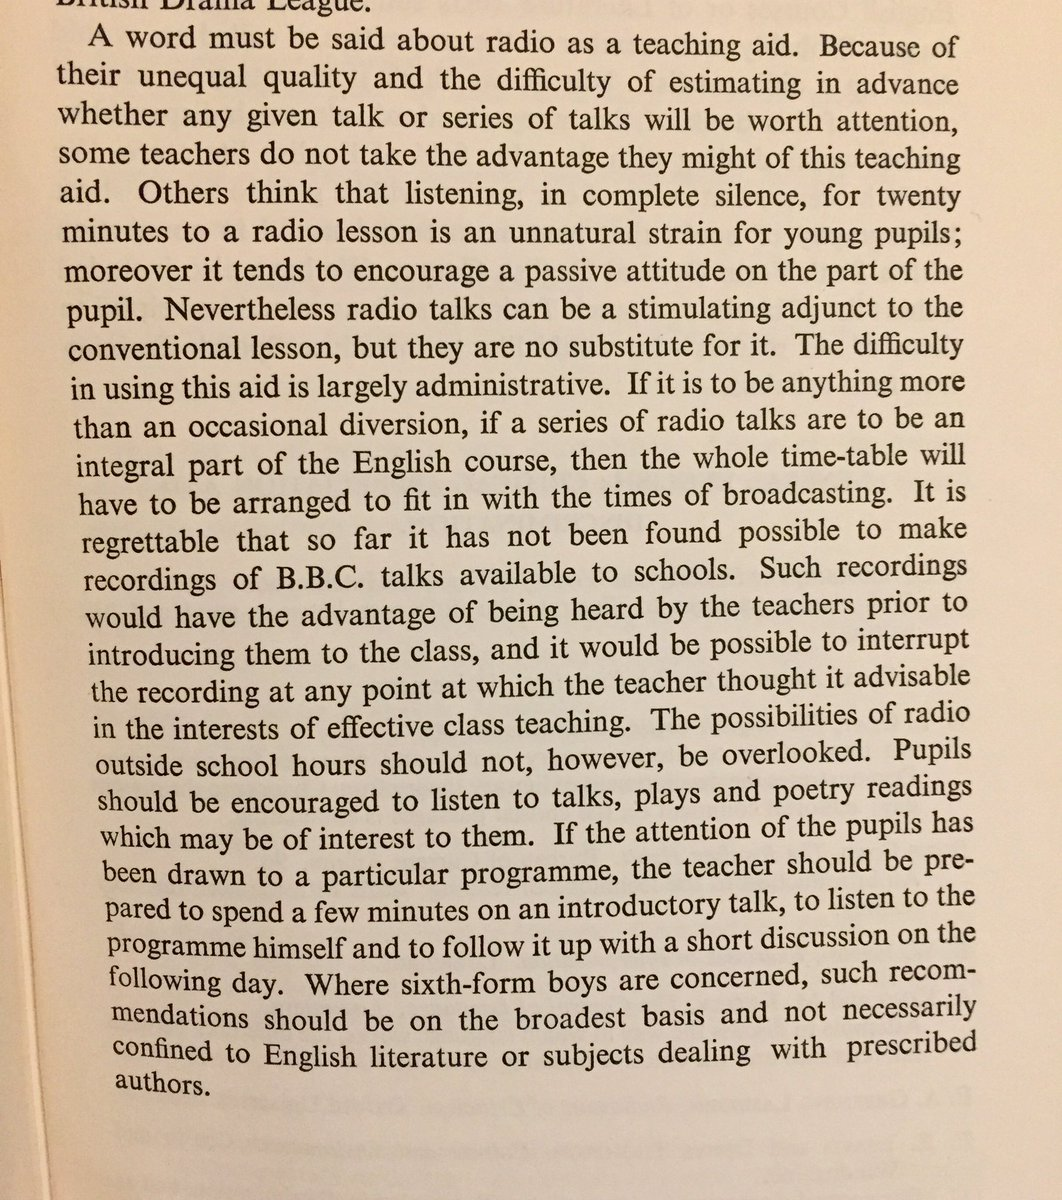 Instructions for teachers on the use of technology from 1952